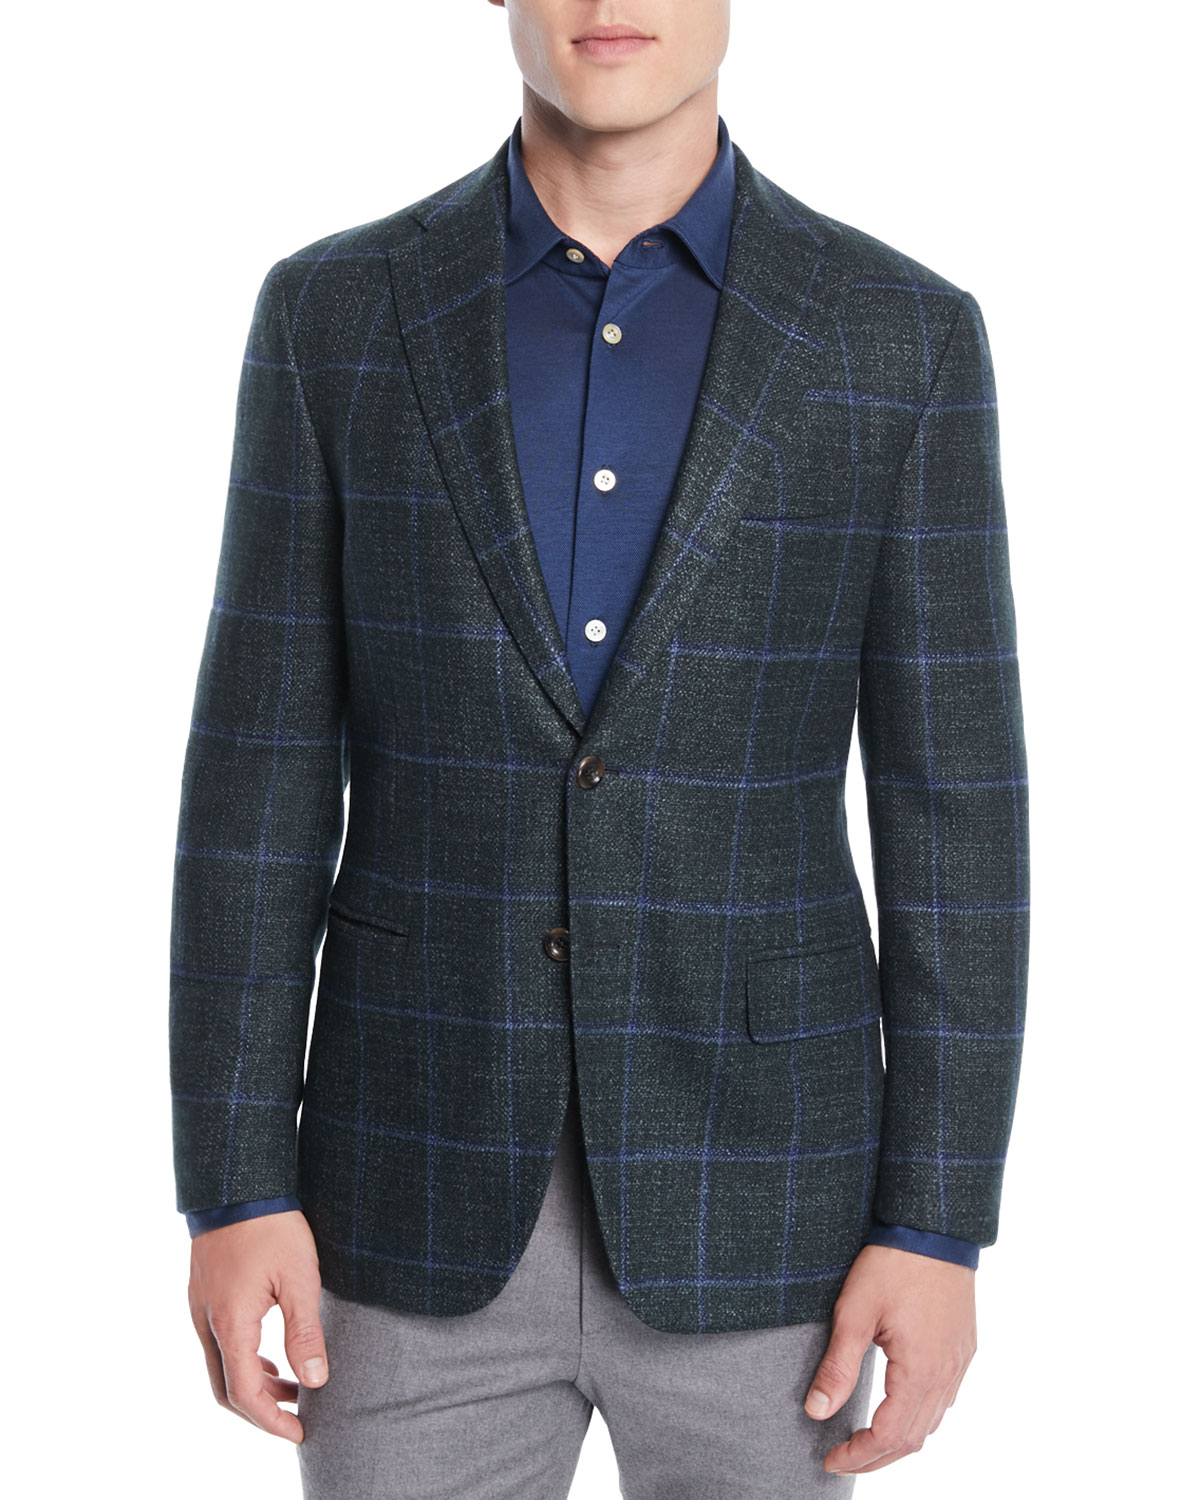 OXXFORD Men'S Windowpane Two-Button Jacket in Green